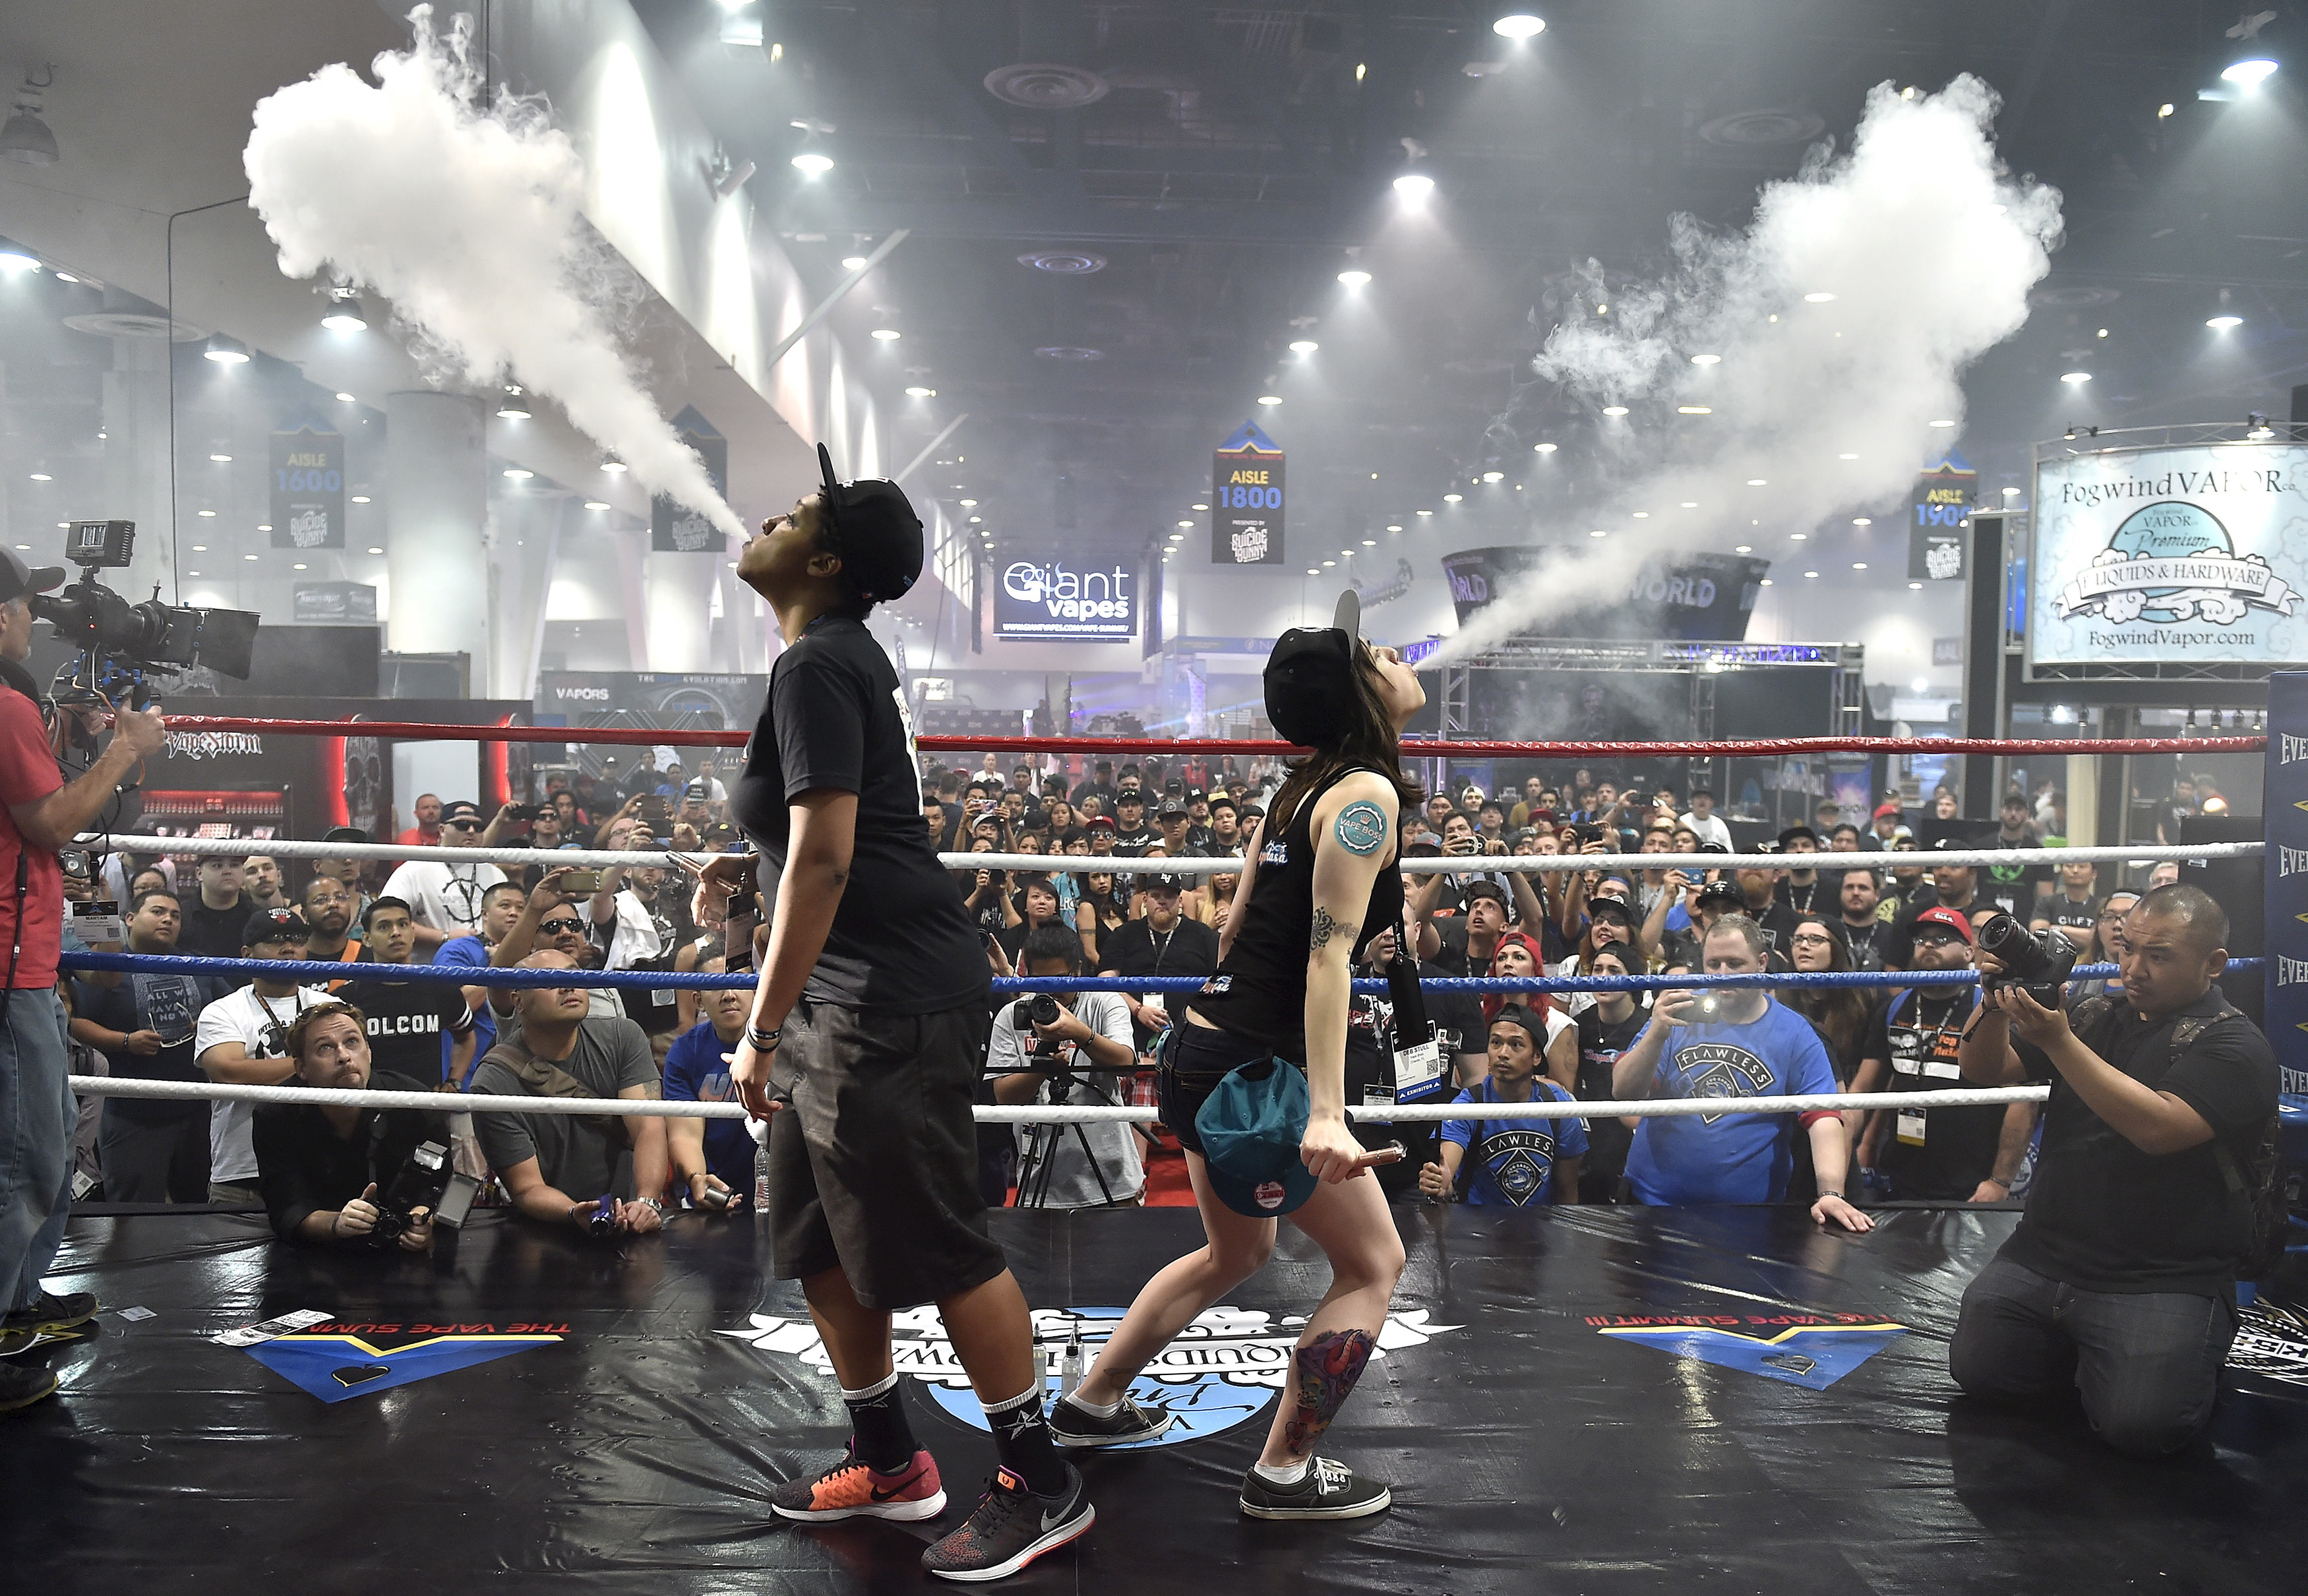 Tricks are one of the reasons teens get into vaping, some research suggests. Here, spectators watch the biggest vape cloud competition at the Vape Summit 3 in Las Vegas, Nev., in May 2015. (David Becker/Reuters)